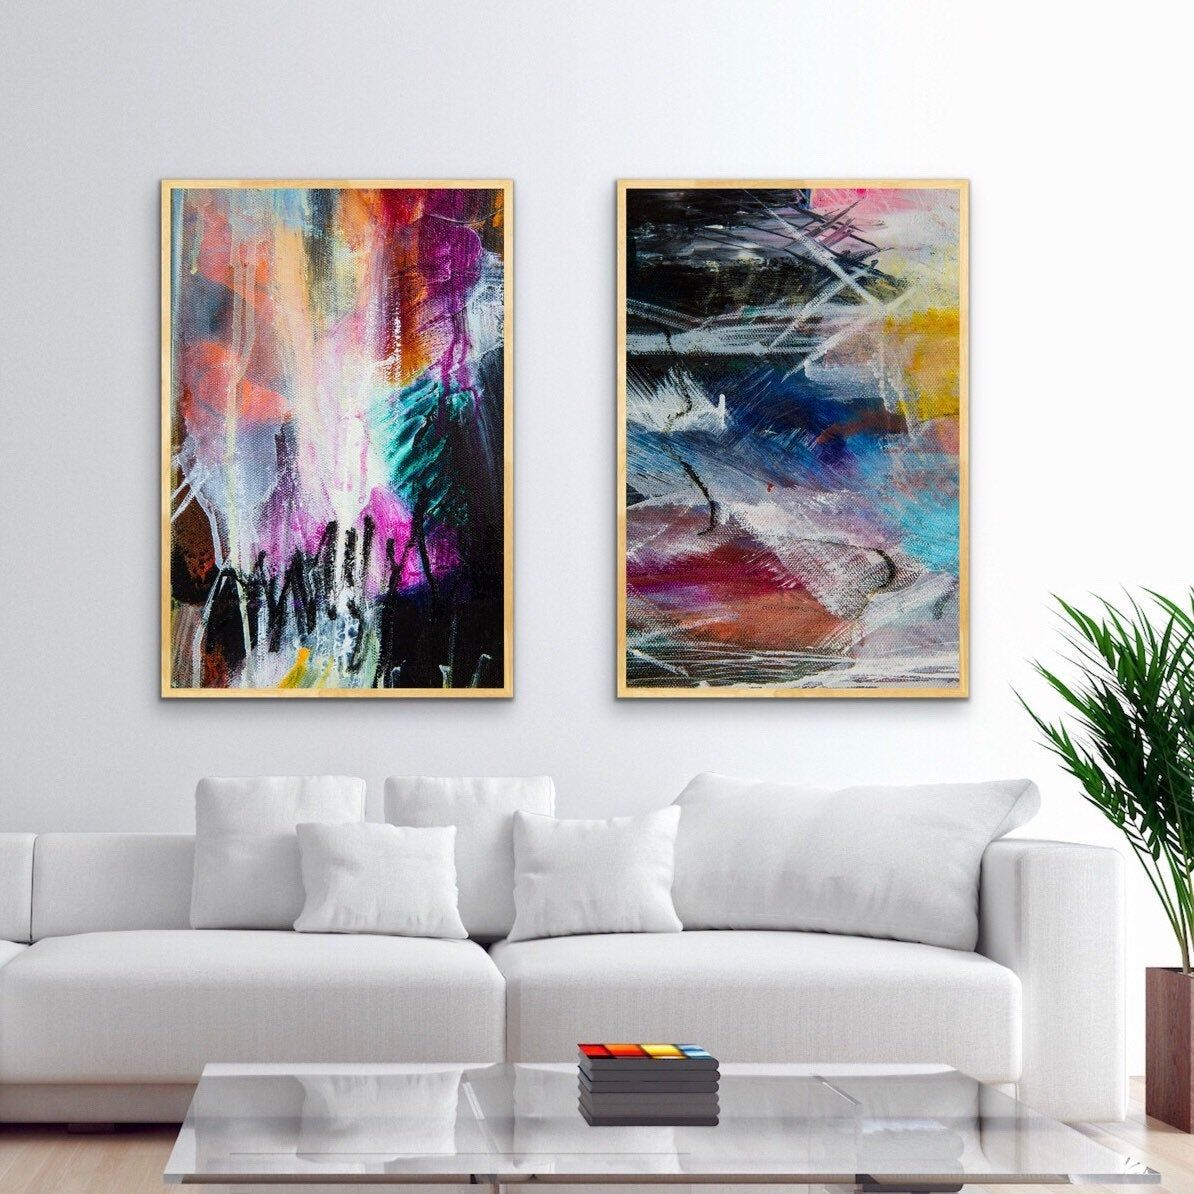 Large Abstract Paintings 24x36 Set Of 2 Printable Wall Art Etsy In 2021 Large Abstract Wall Art Printable Wall Art Etsy Pretty Wall Art